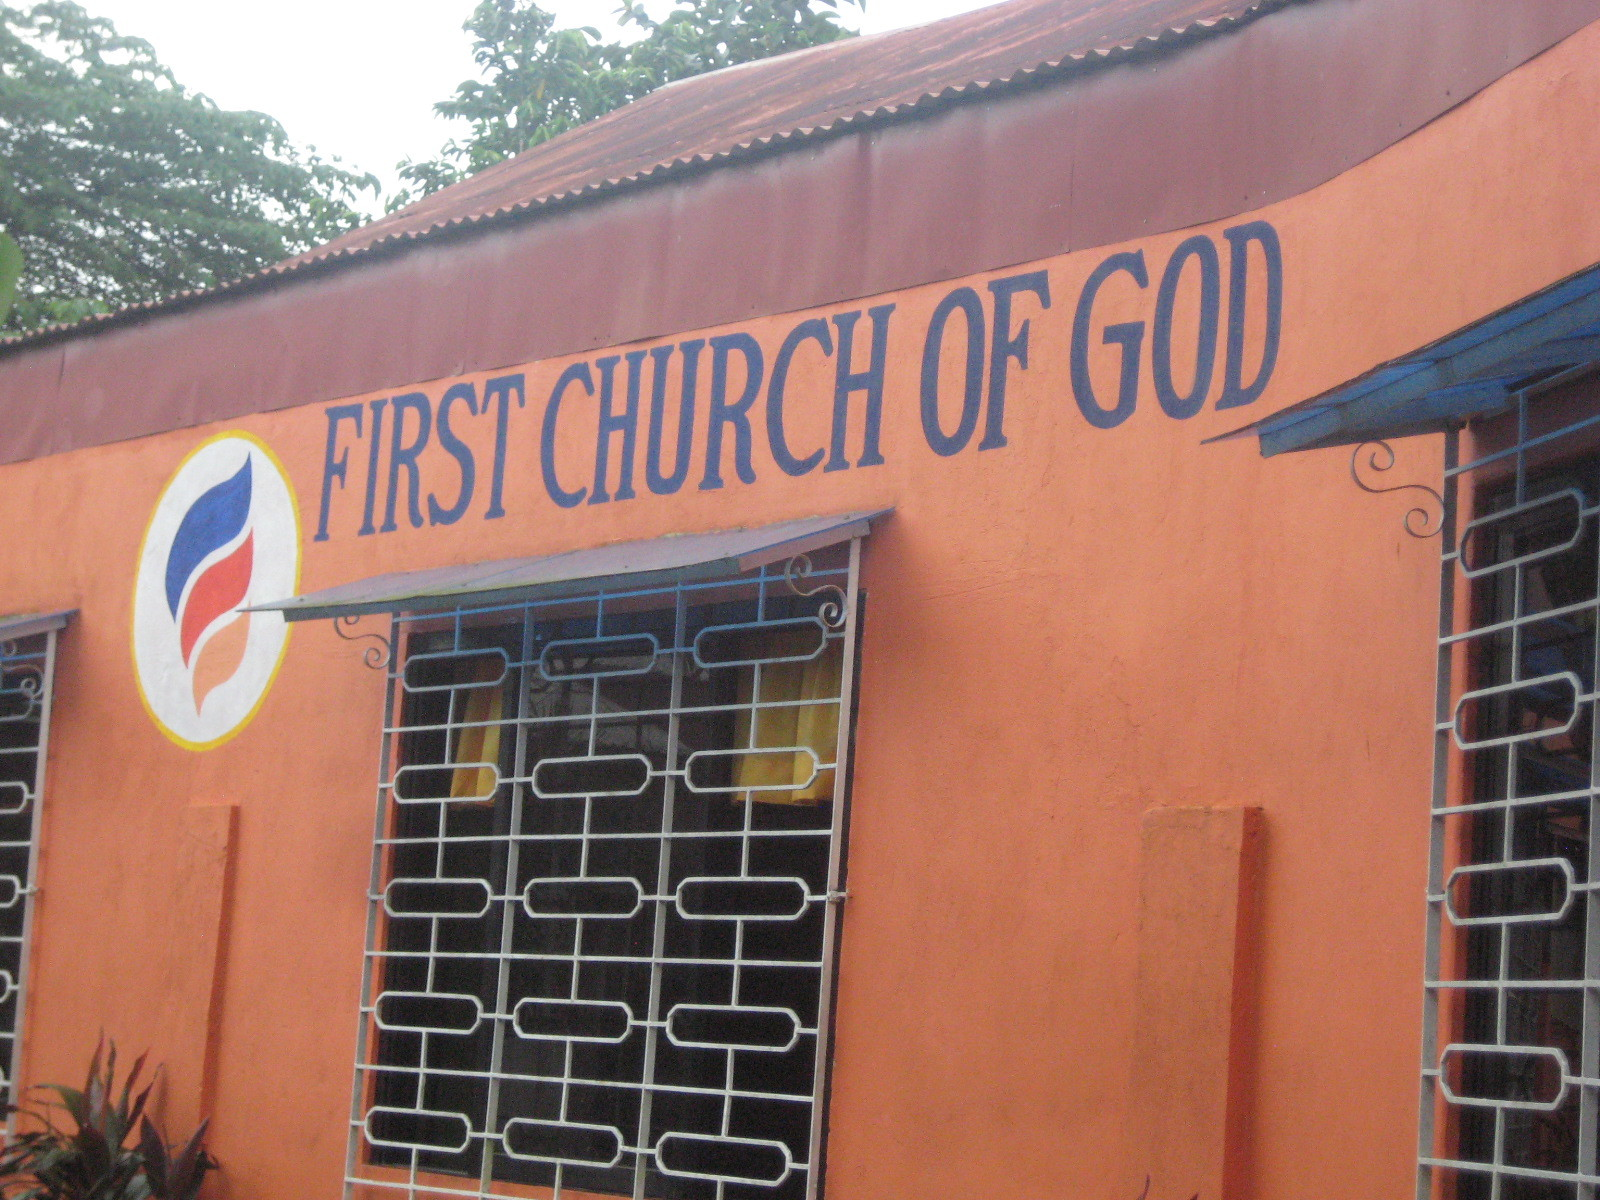 First Church of God (Anderson), Laguna, Philippines